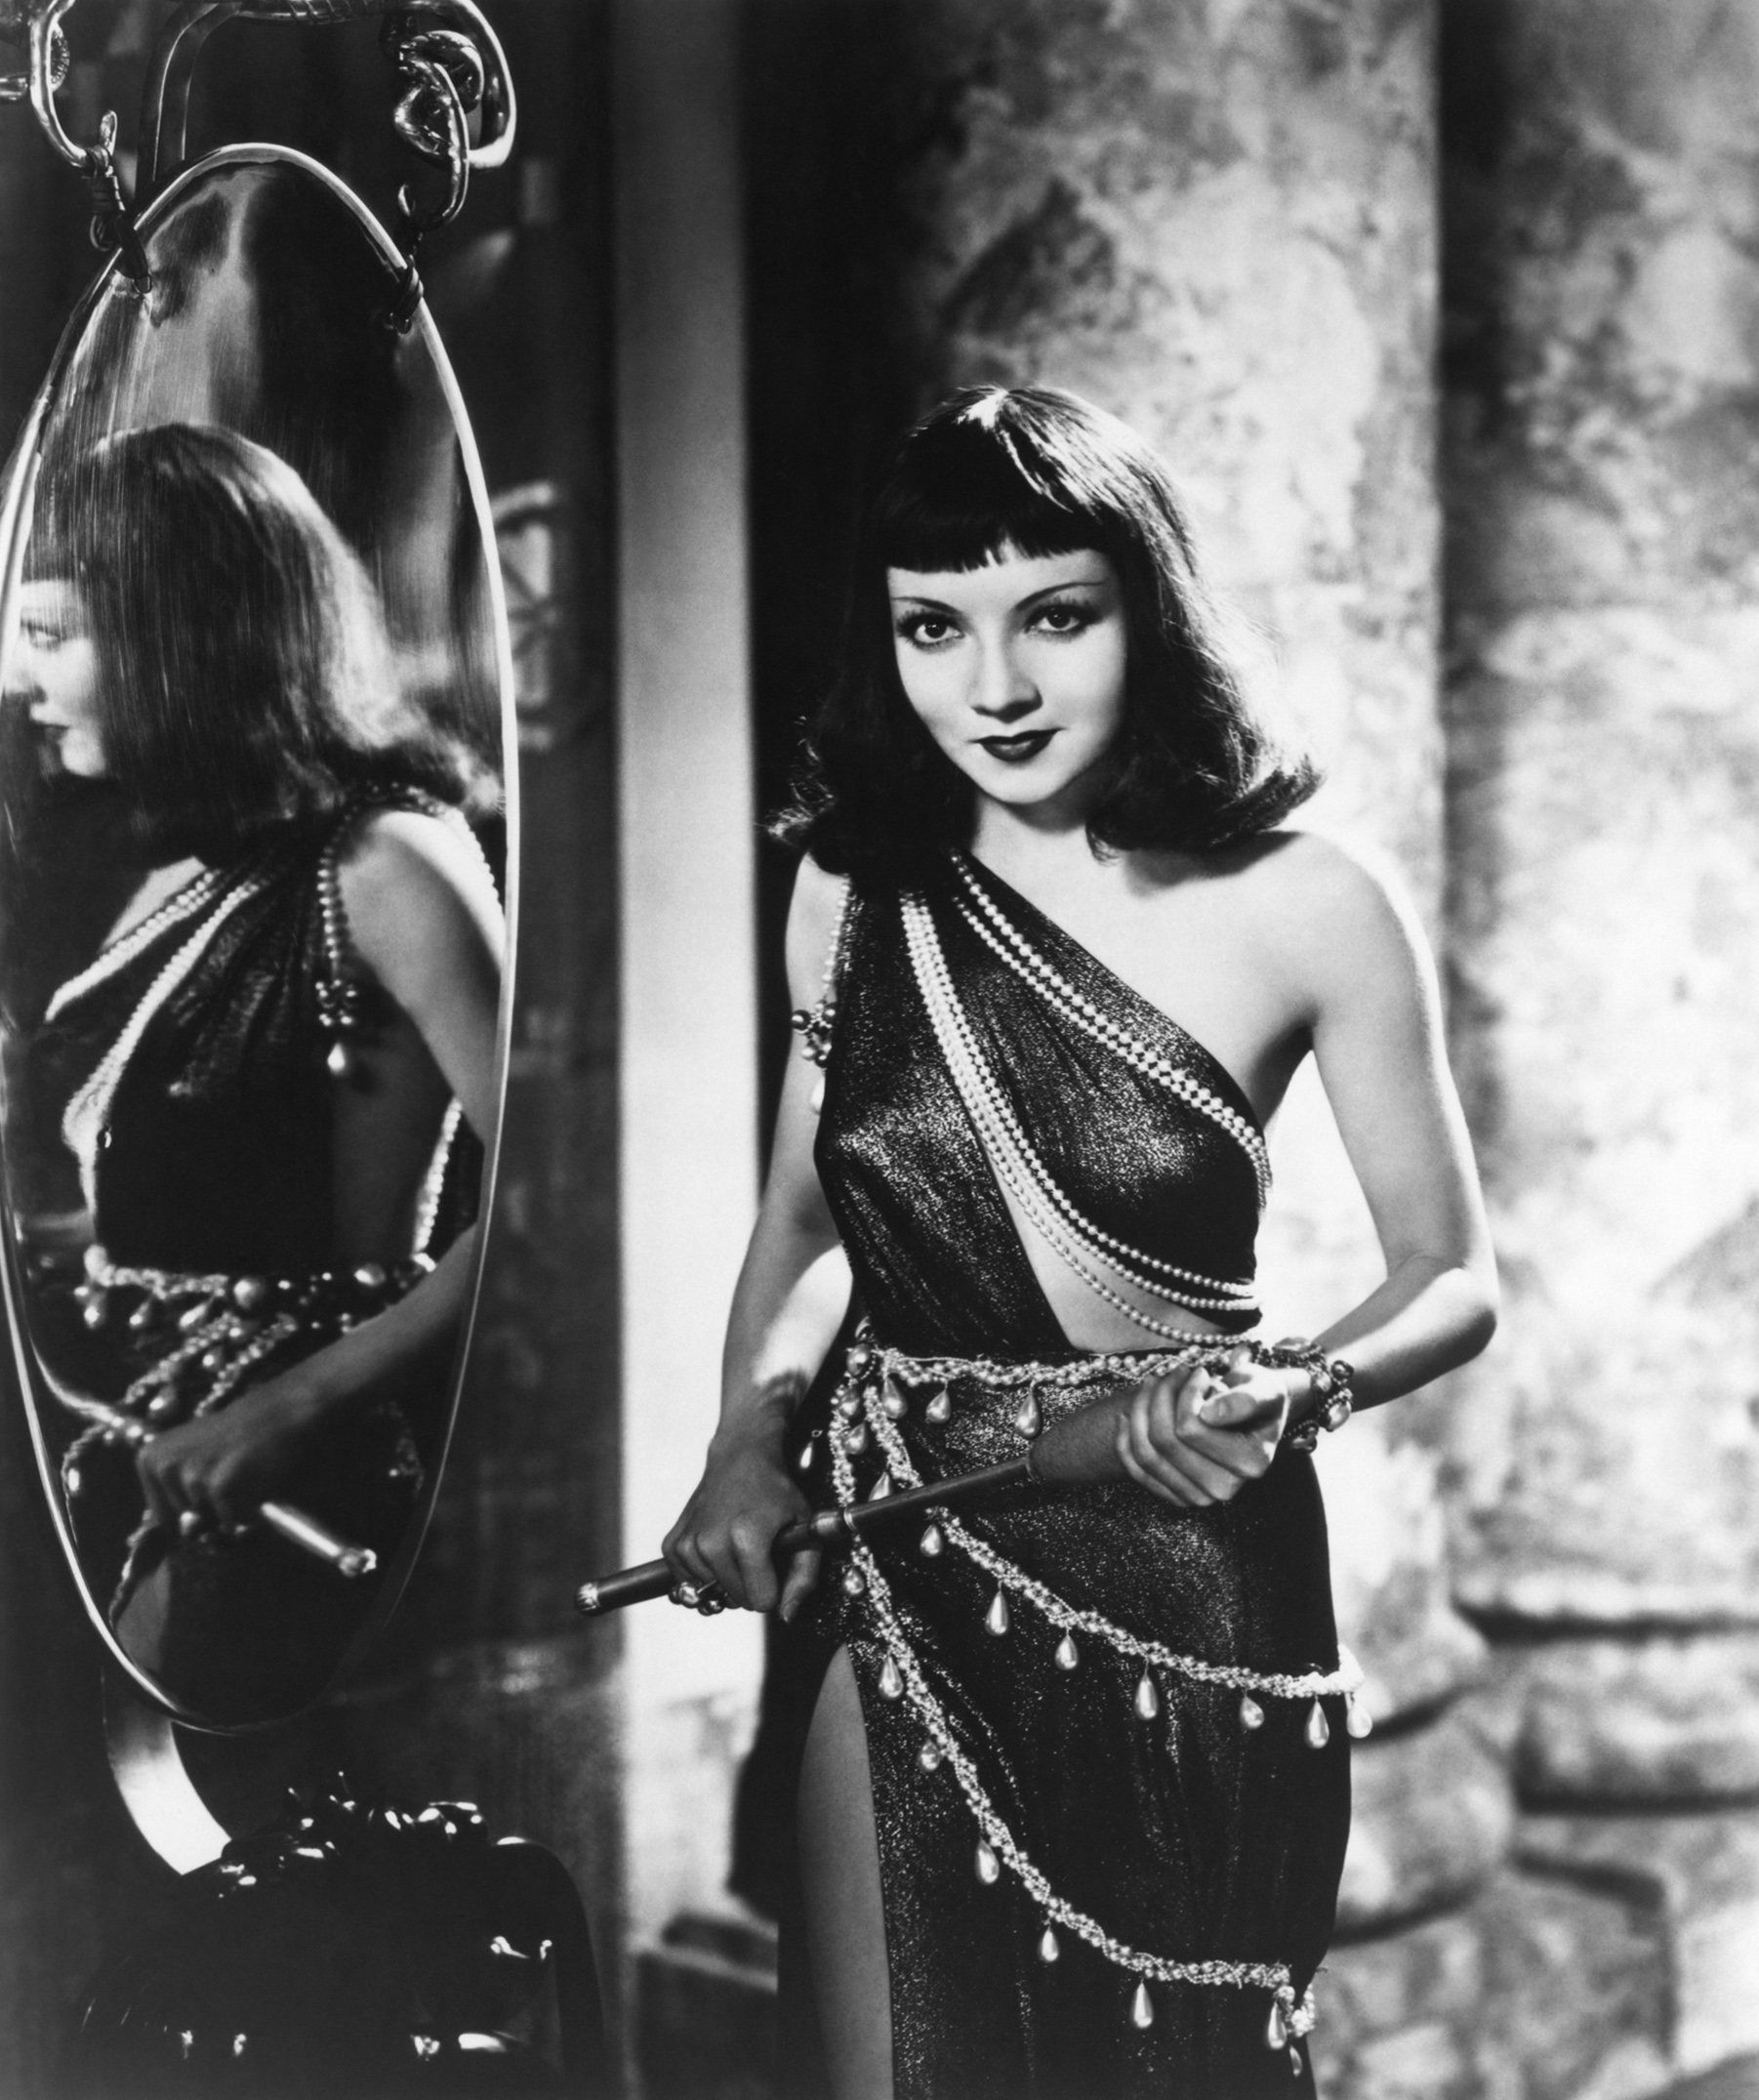 Claudette Colbert nude (79 photo), Topless, Fappening, Boobs, swimsuit 2020